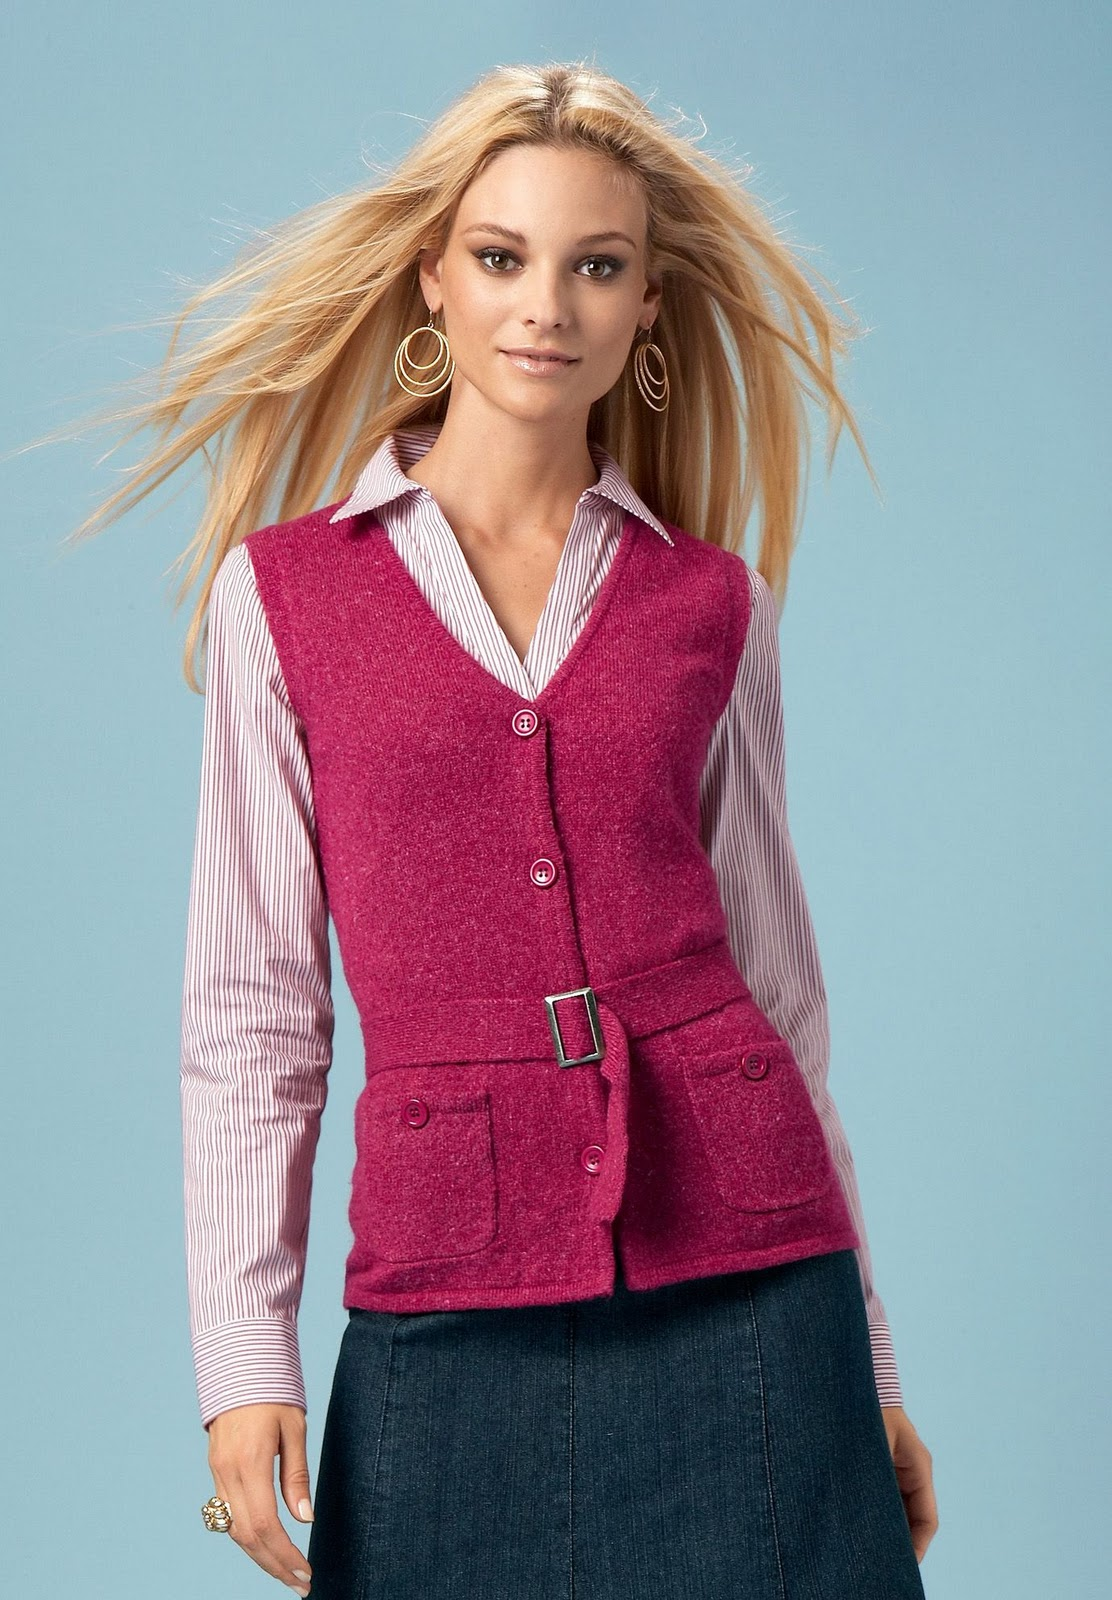 Cardigan Vest Womens - Cardigan With Buttons